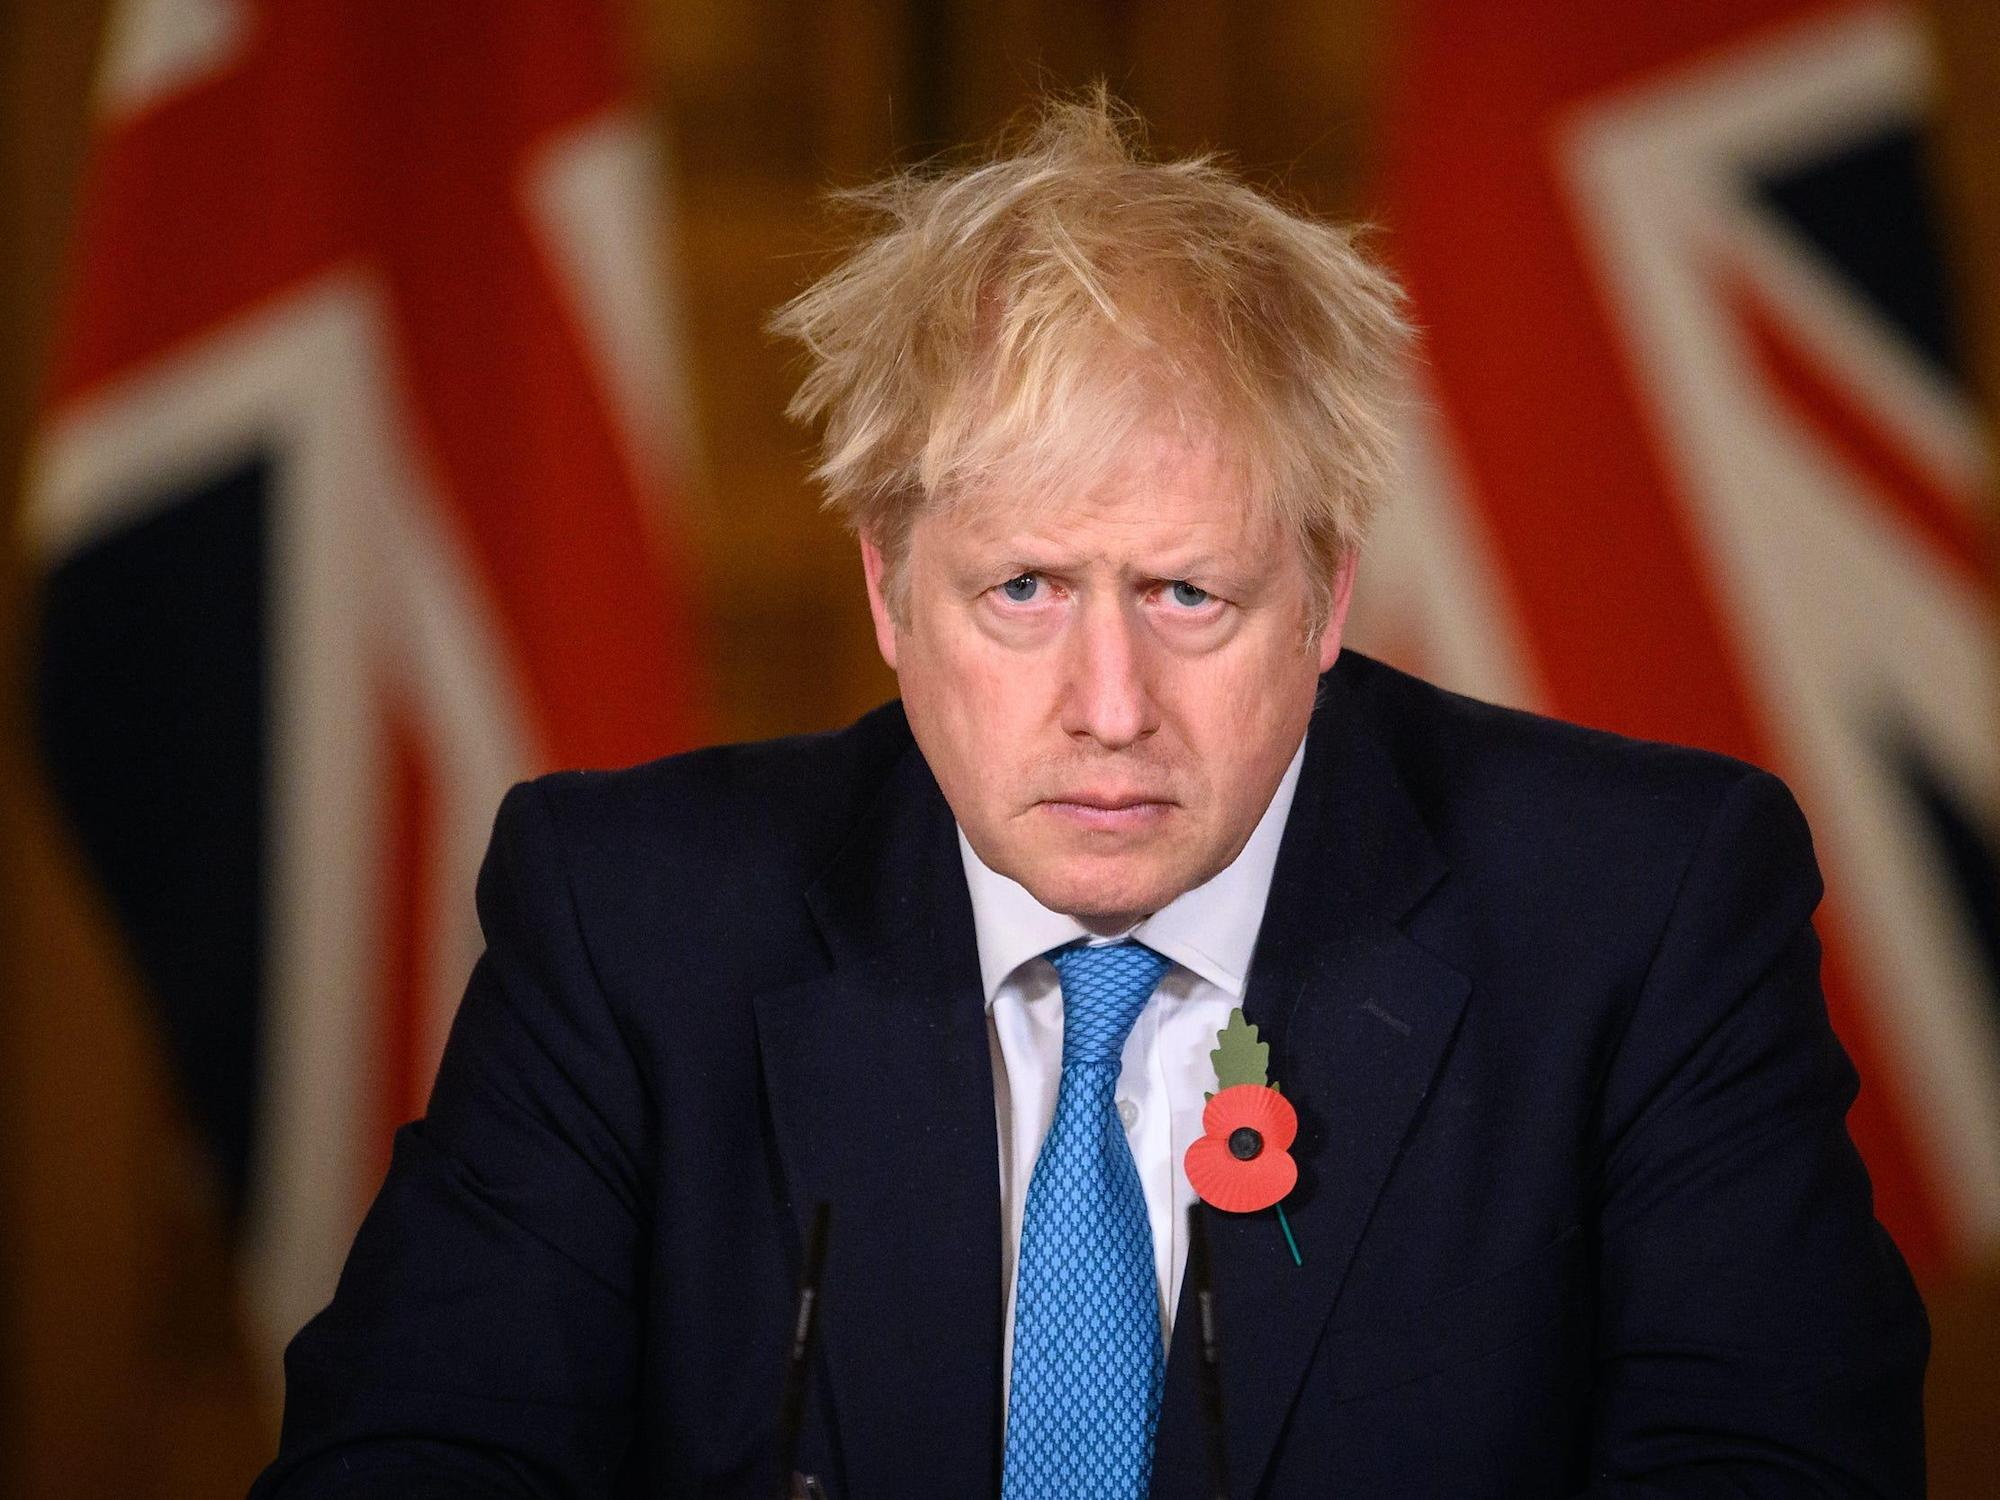 Boris Johnson is in self-isolation after a British Member of Parliament he spent 35 minutes with tested positive for COVID-19